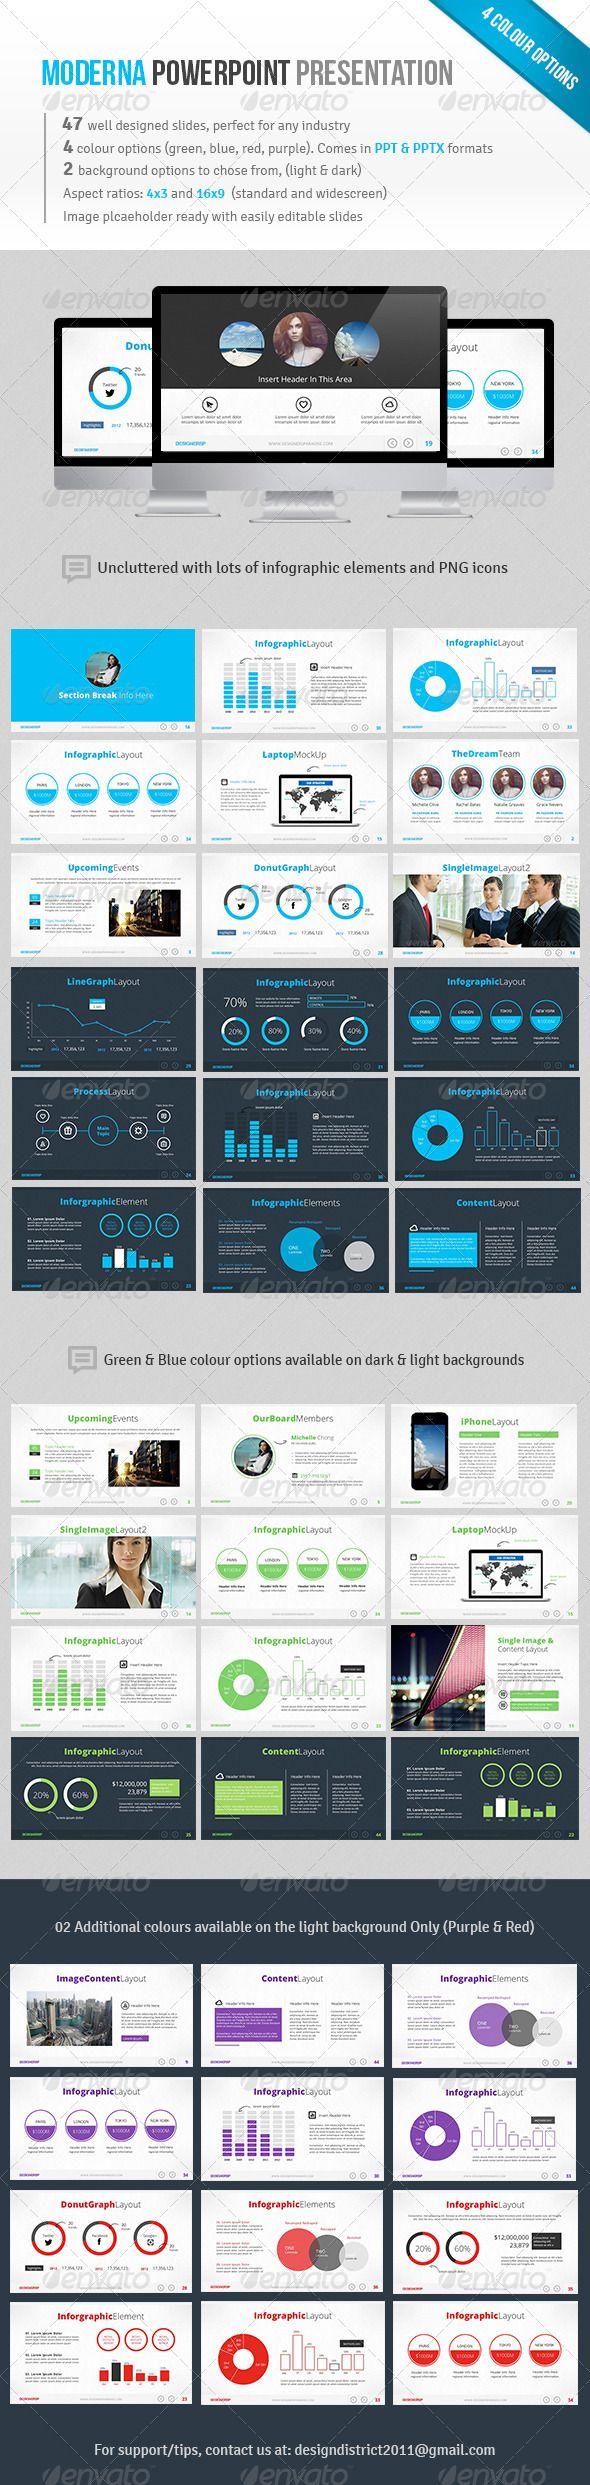 26 best powerpoint templates images on pinterest templates moderna powerpoint toneelgroepblik Choice Image